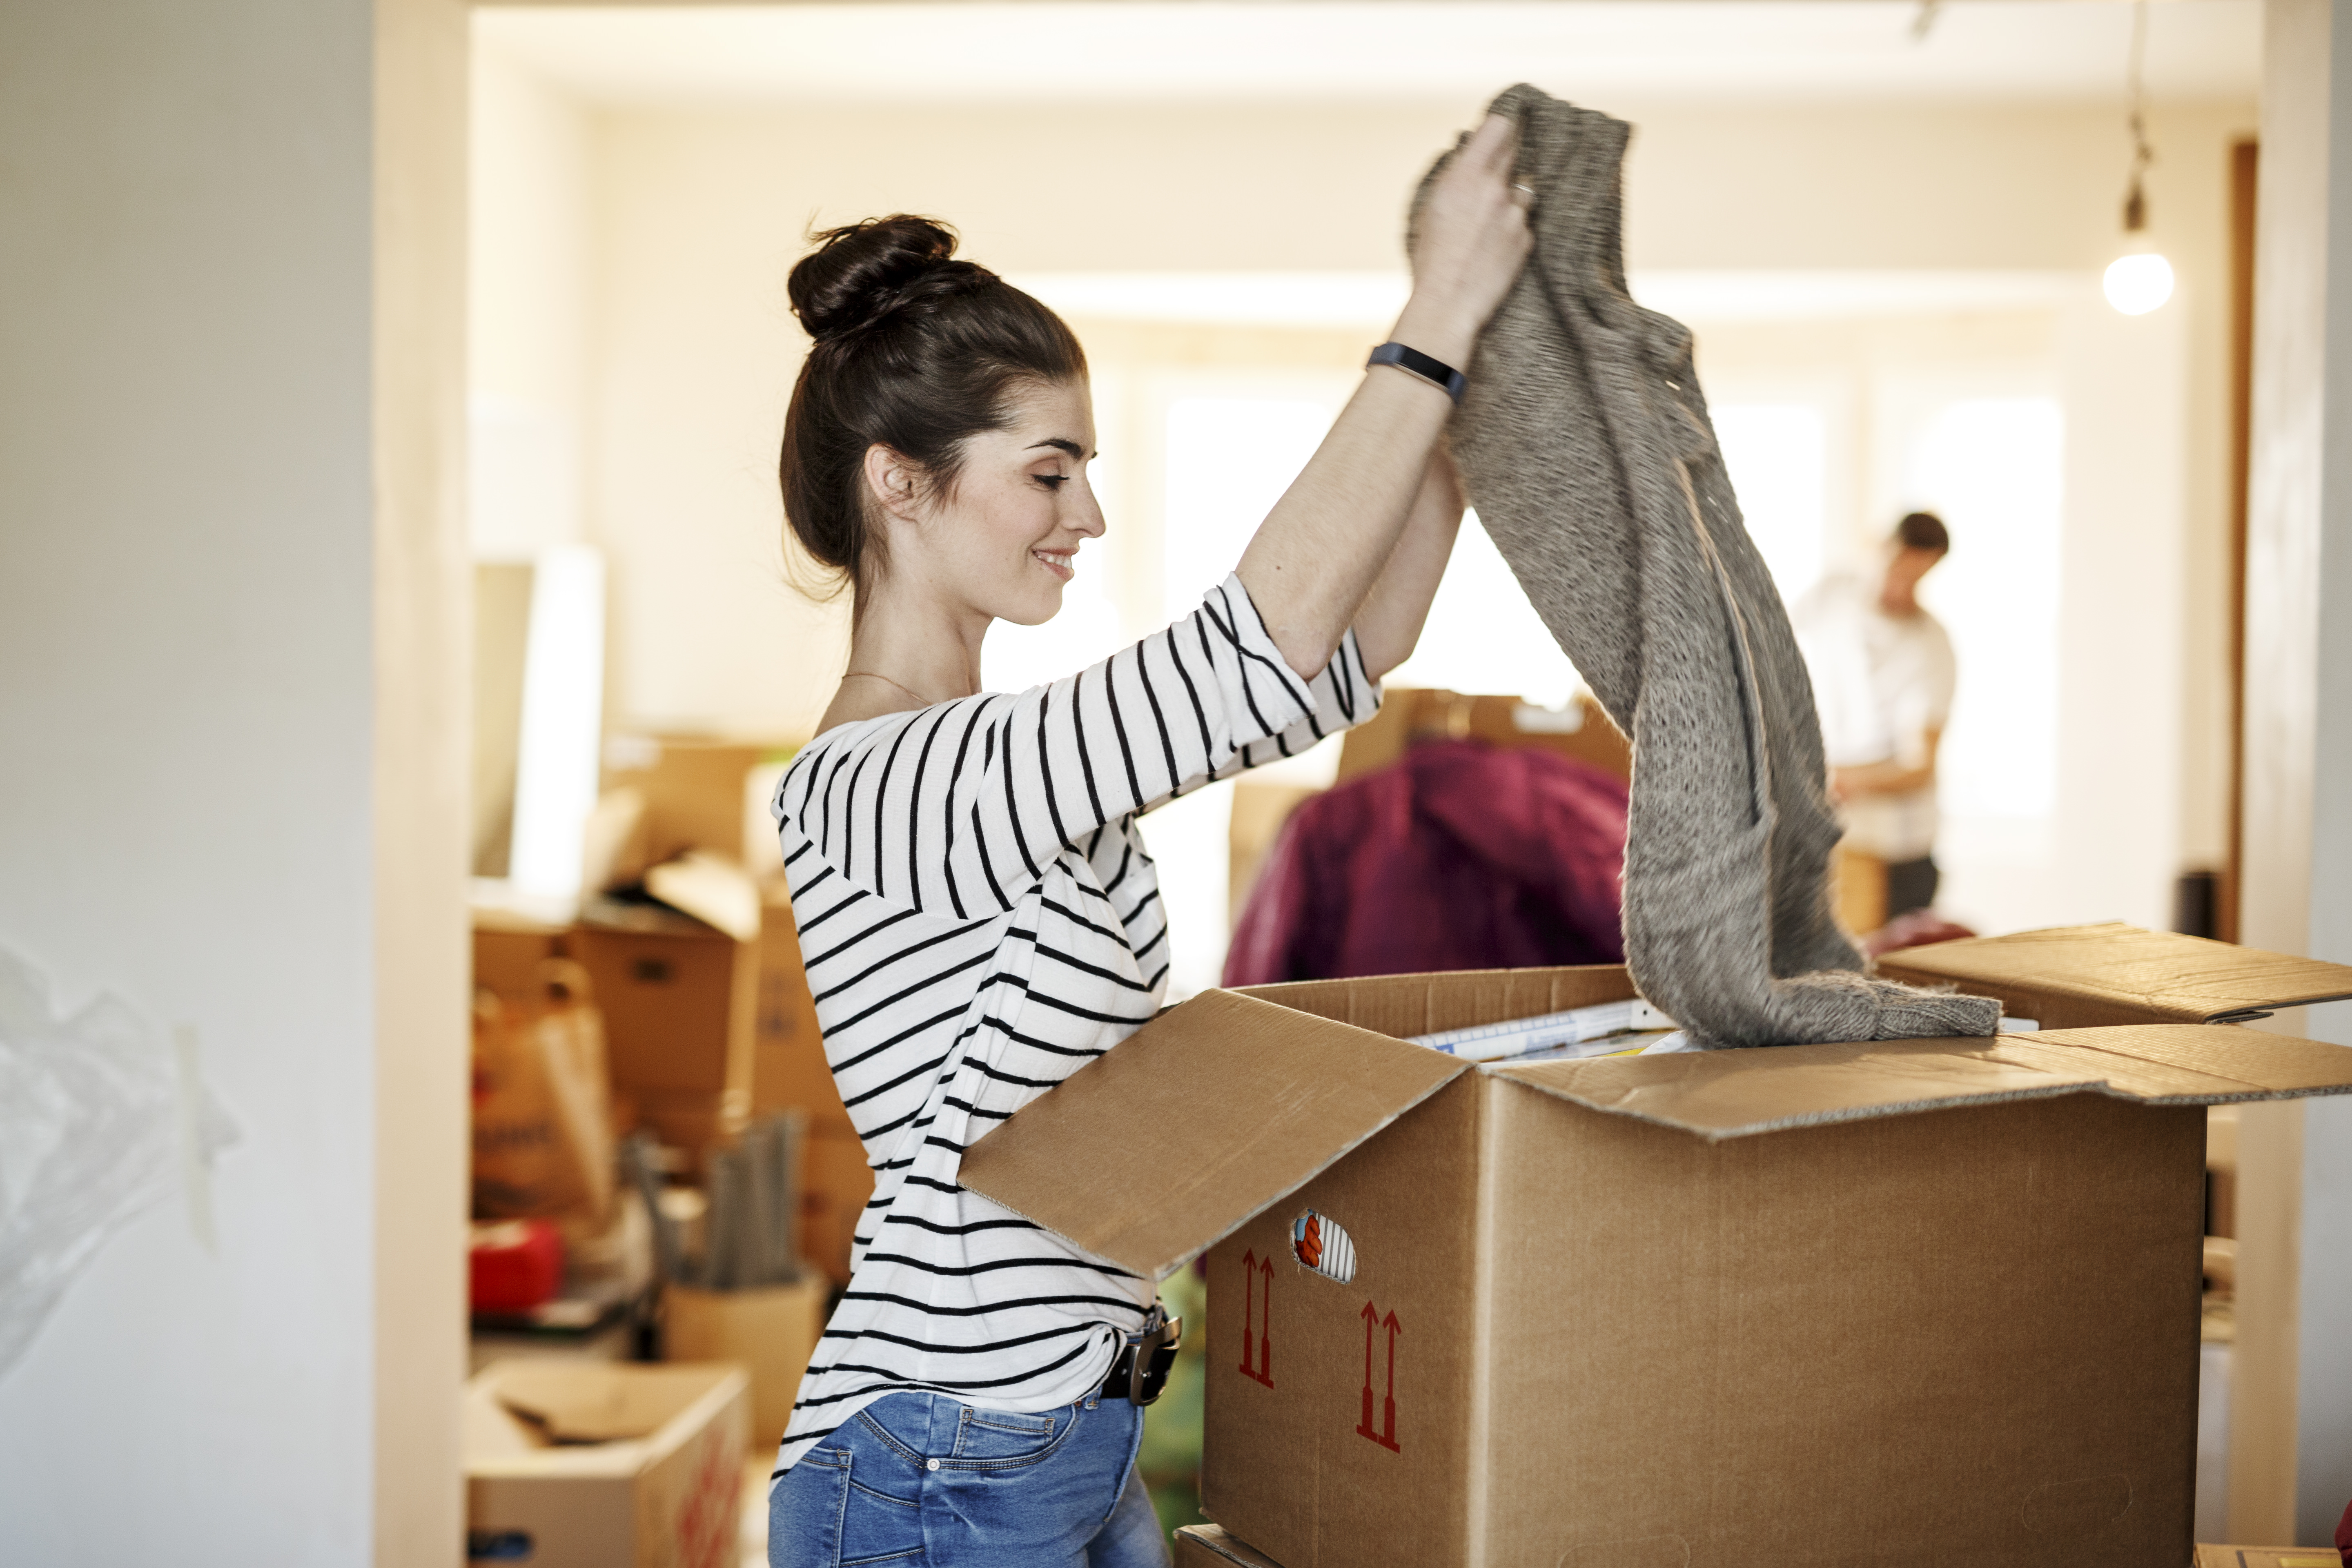 Young woman packing clothing into a box with handles cut into the sides